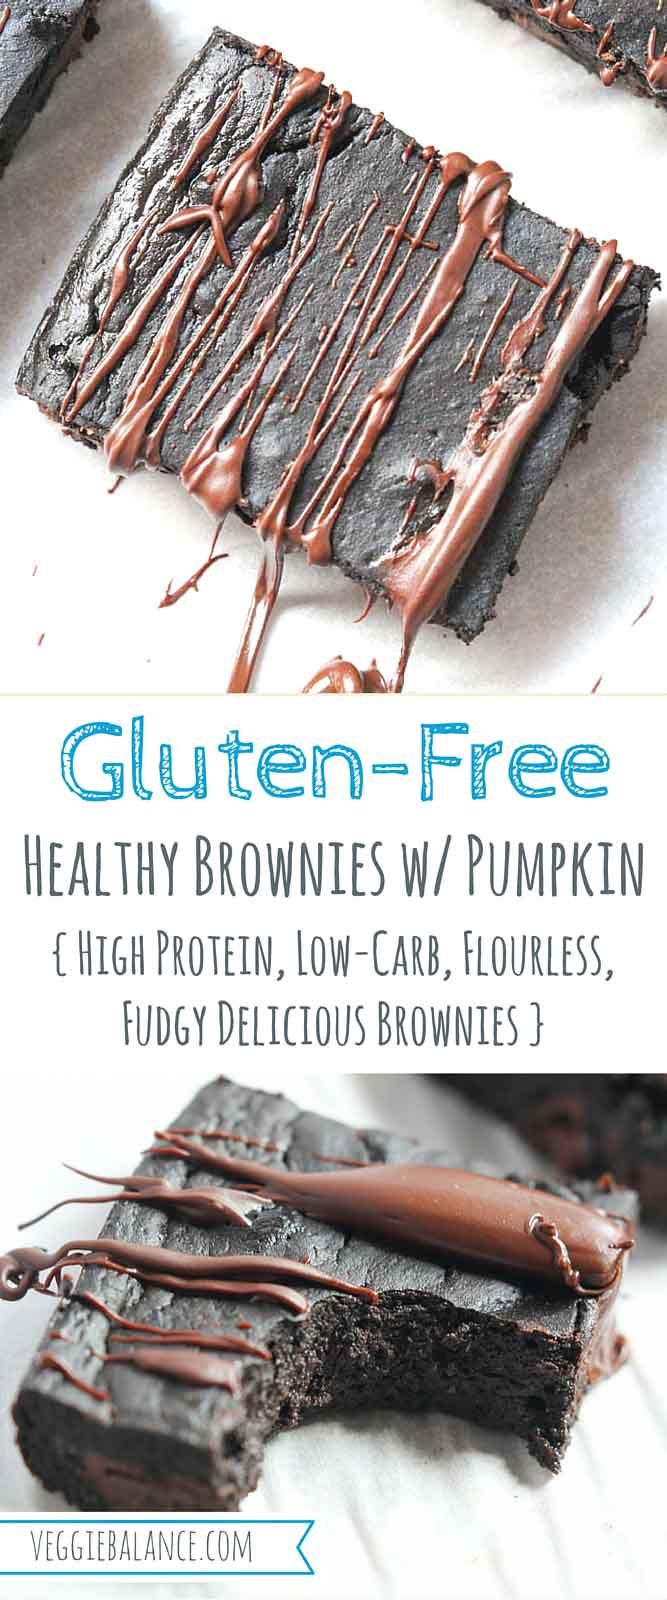 Healthy Brownies made with Pumpkin.5-ingredients to make ultra fudgy brownies that are healthy and gluten-free by using the secret ingredient, pumpkin!